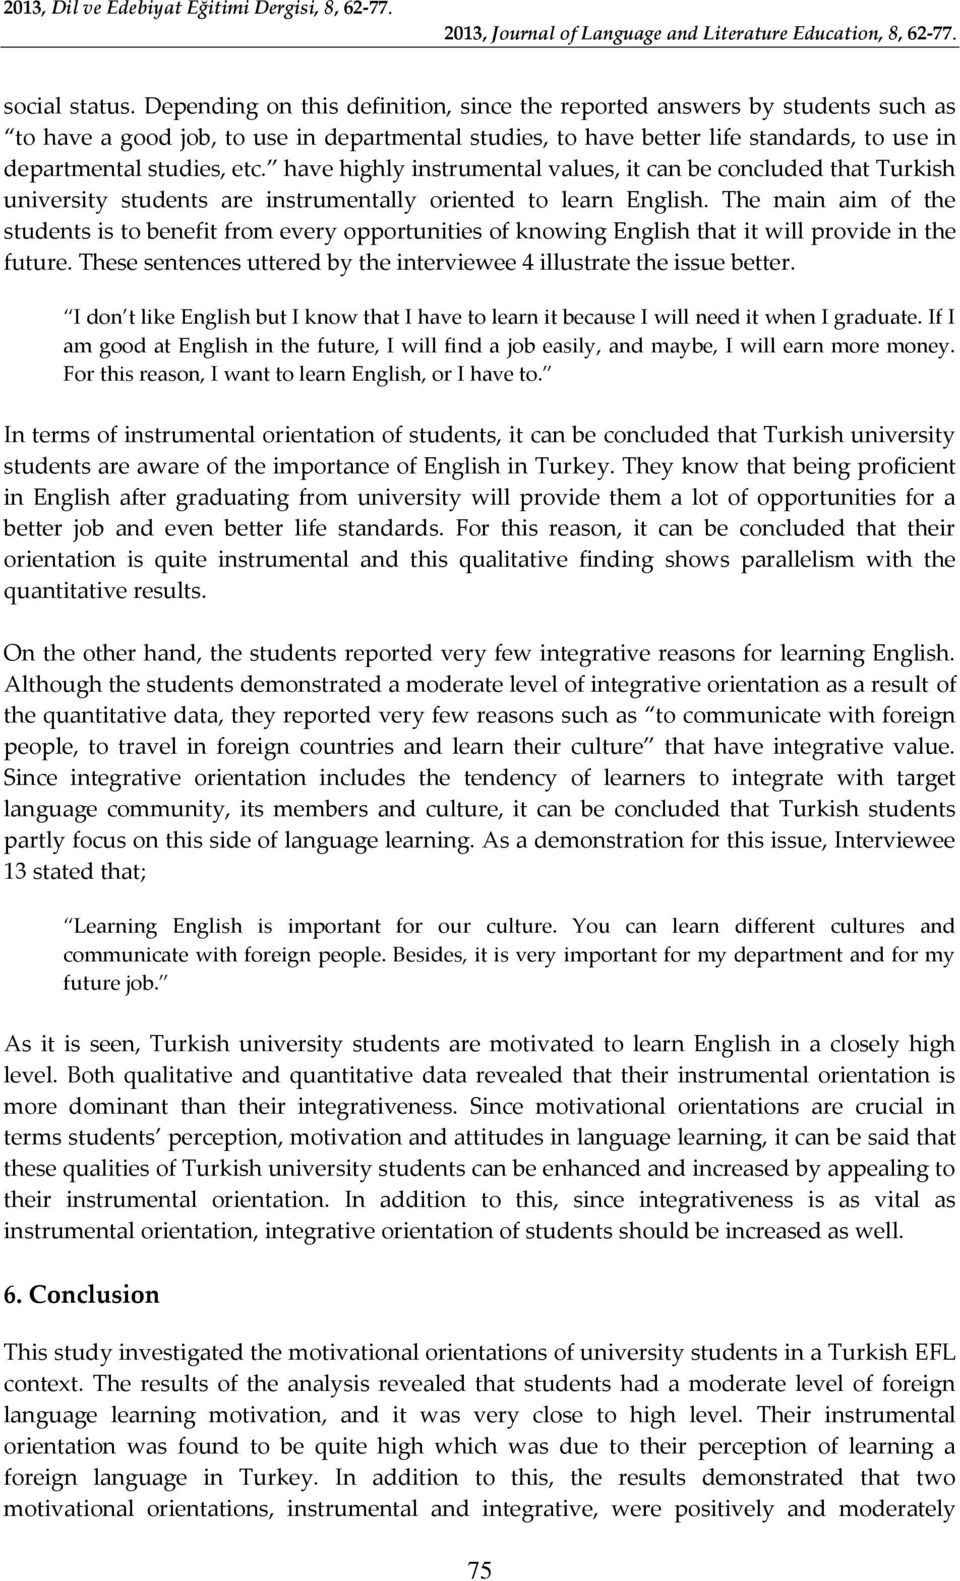 have highly instrumental values, it can be concluded that Turkish university students are instrumentally oriented to learn English.